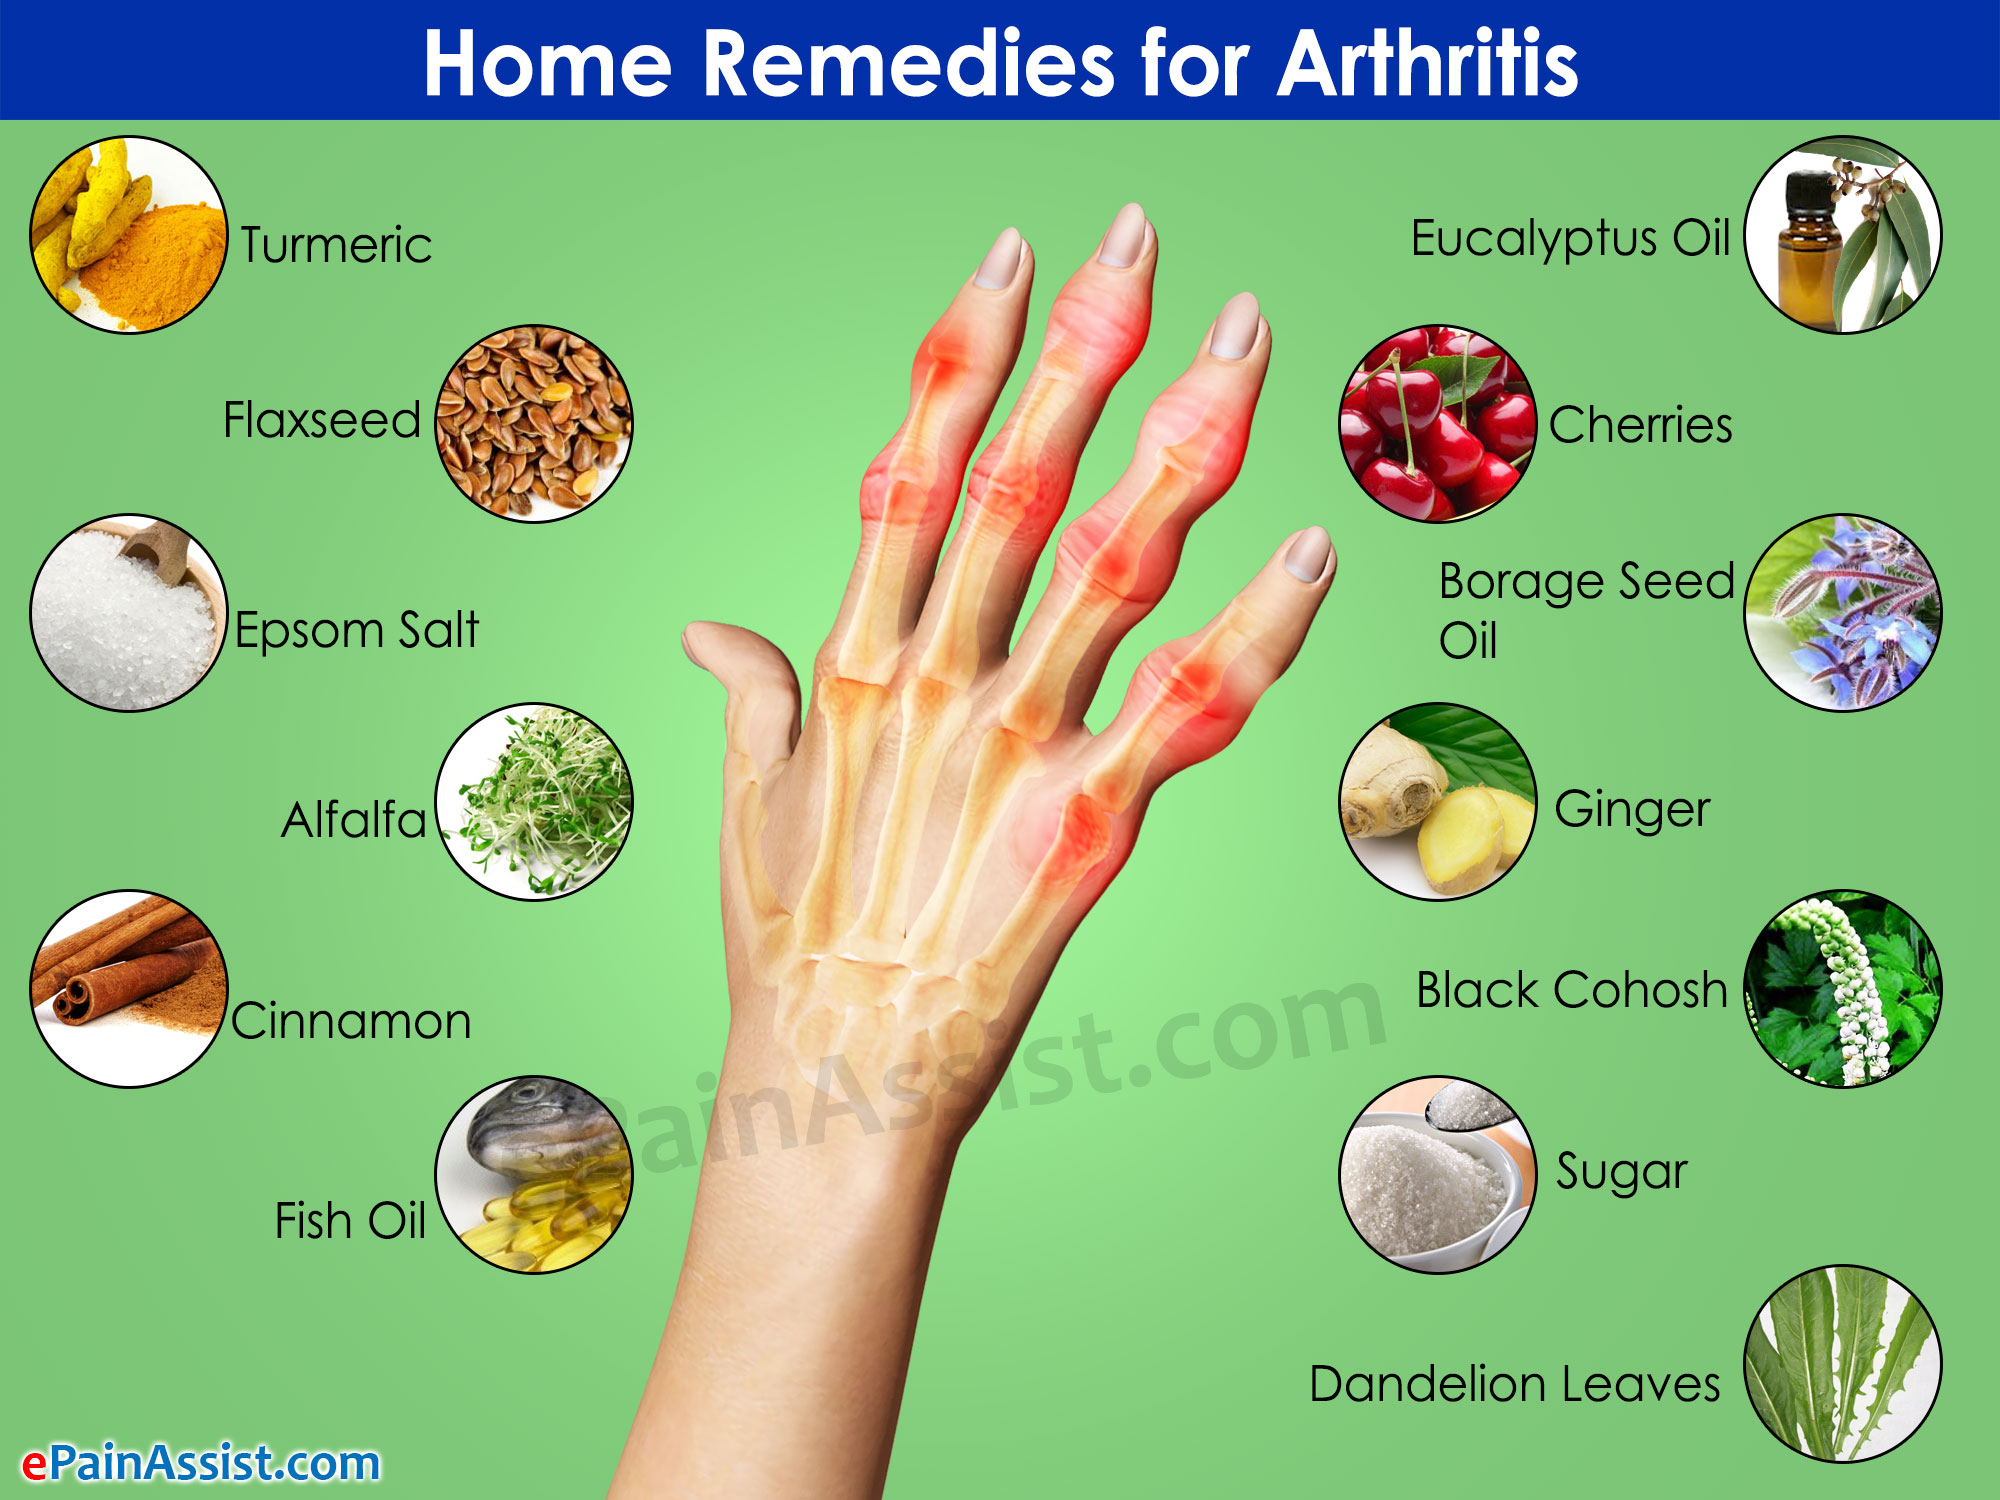 Home remedies for arthritis for Fish oil for arthritis